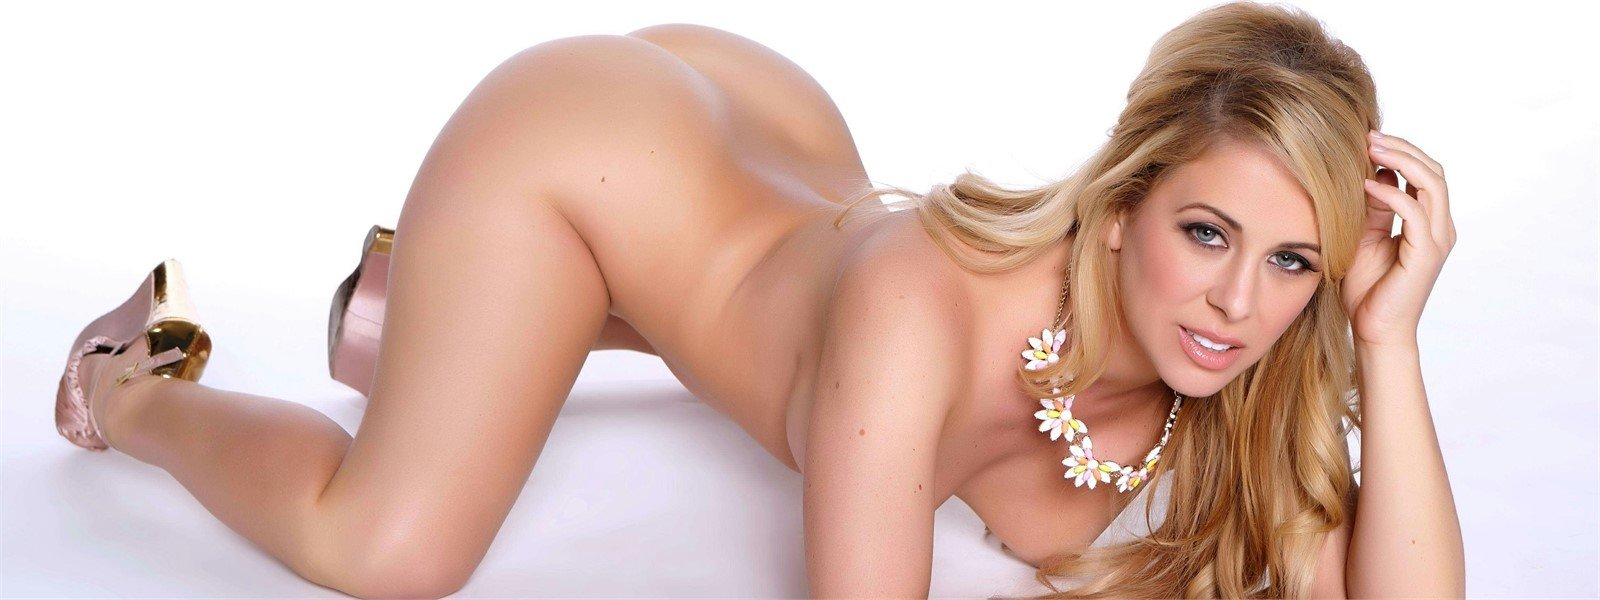 unlimited adult video streaming | adult empire unlimited